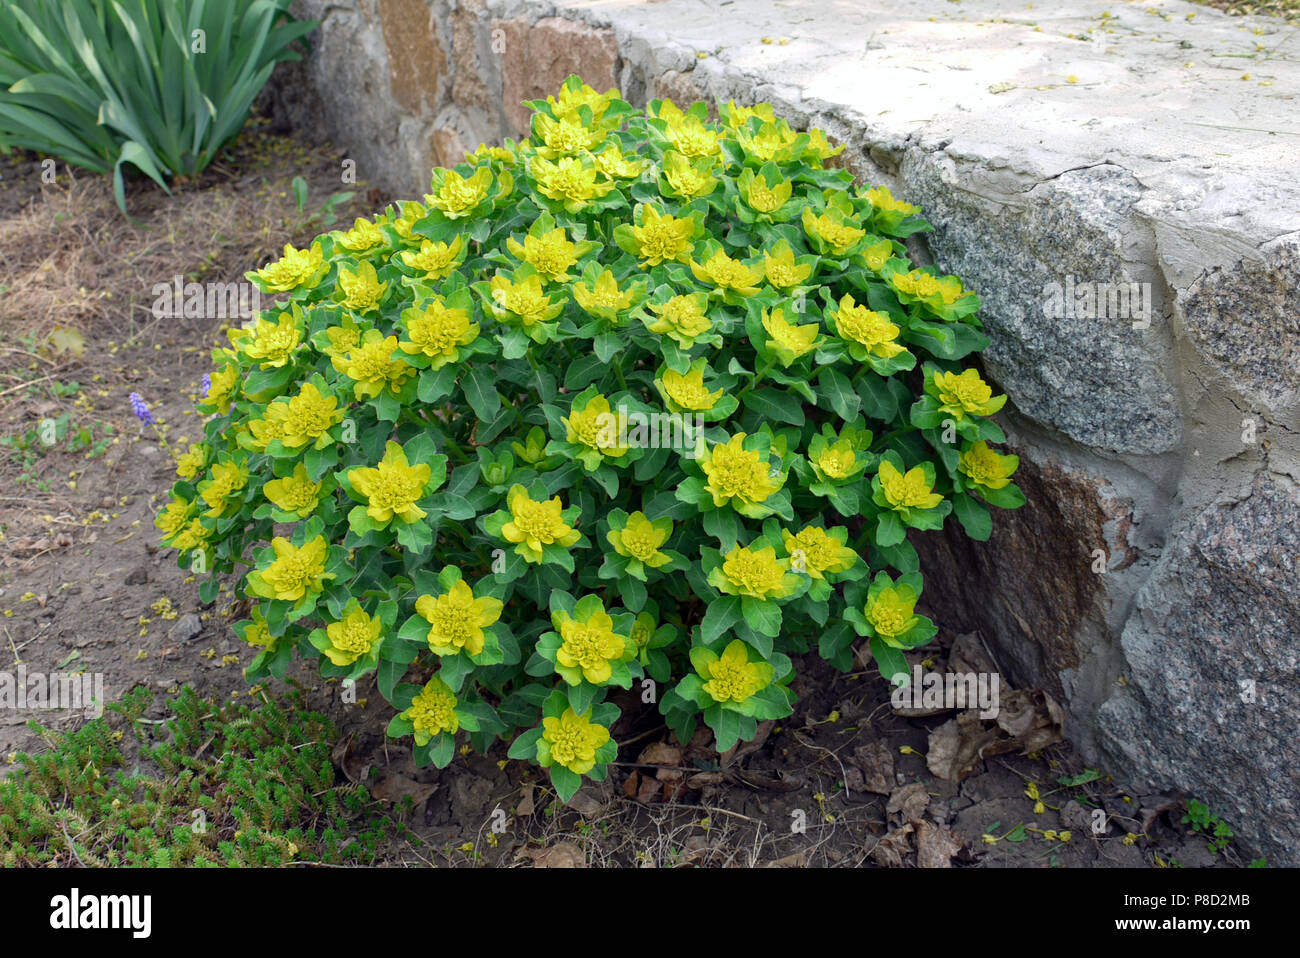 Lush Flower Bed With Yellow Flowers And Large Green Leaves On The